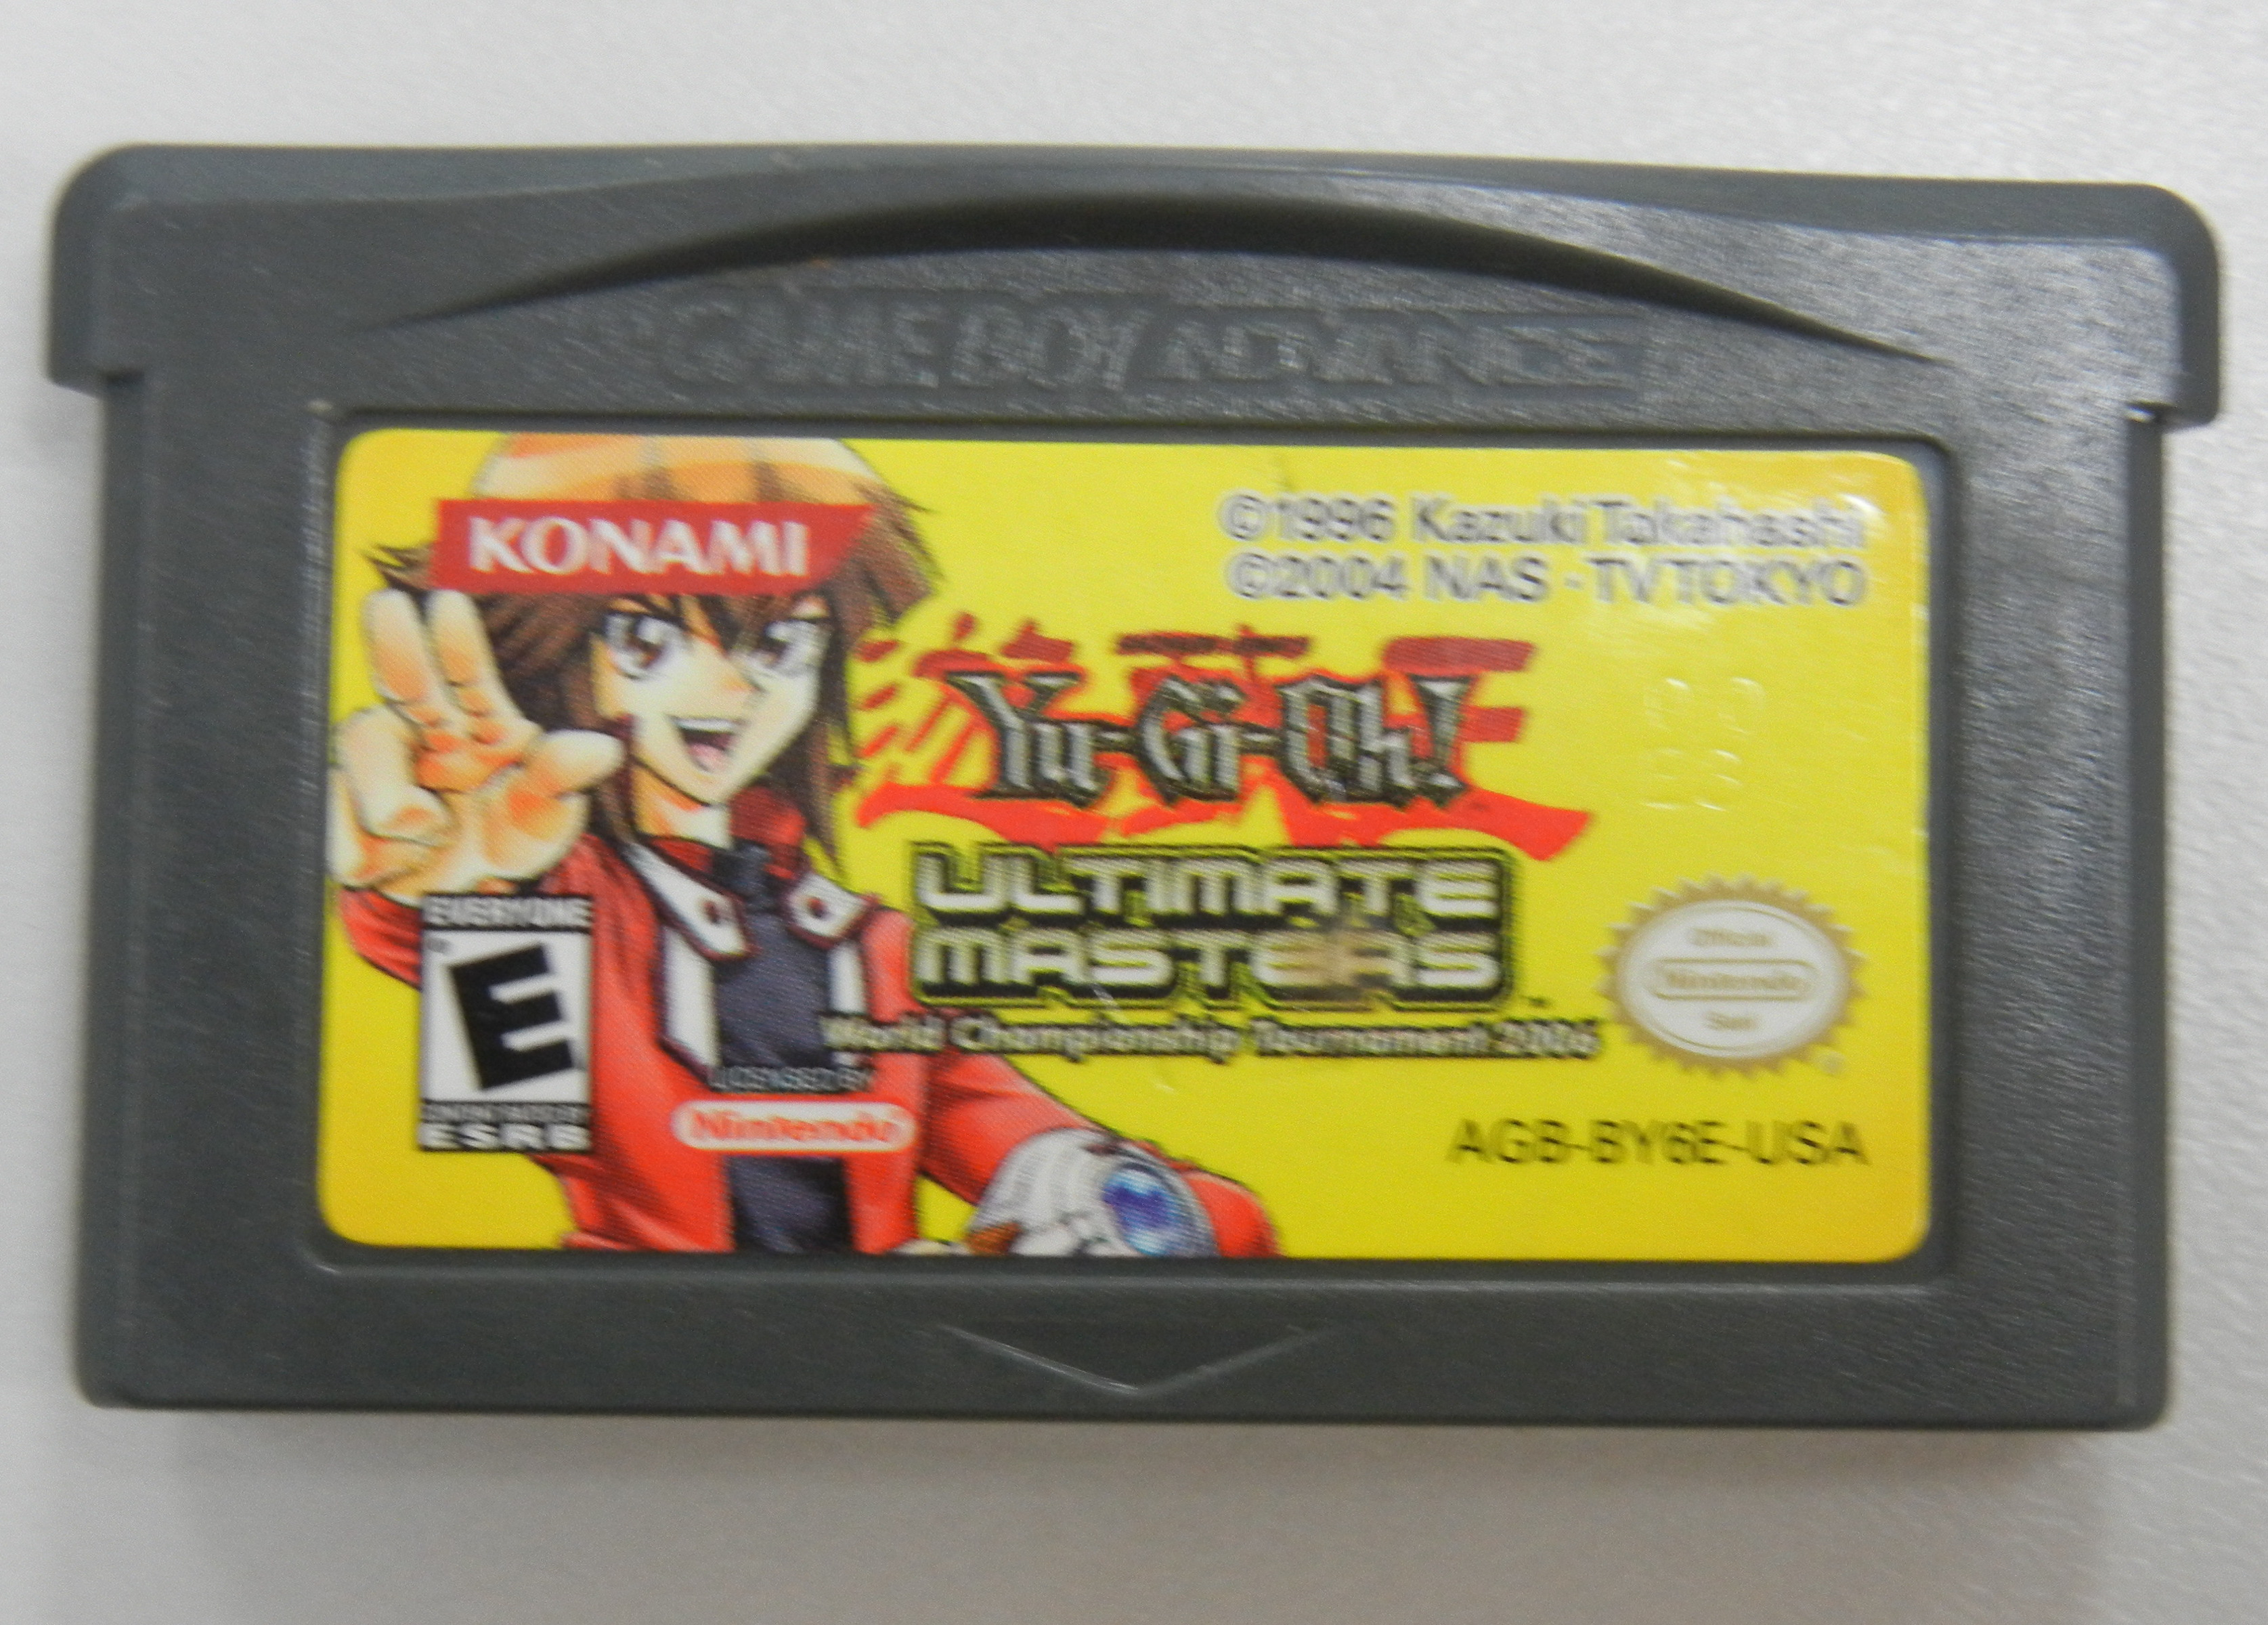 YU-GI-OH ULTIMATE MASTERS - GAMEBOY ADVANCE GAME